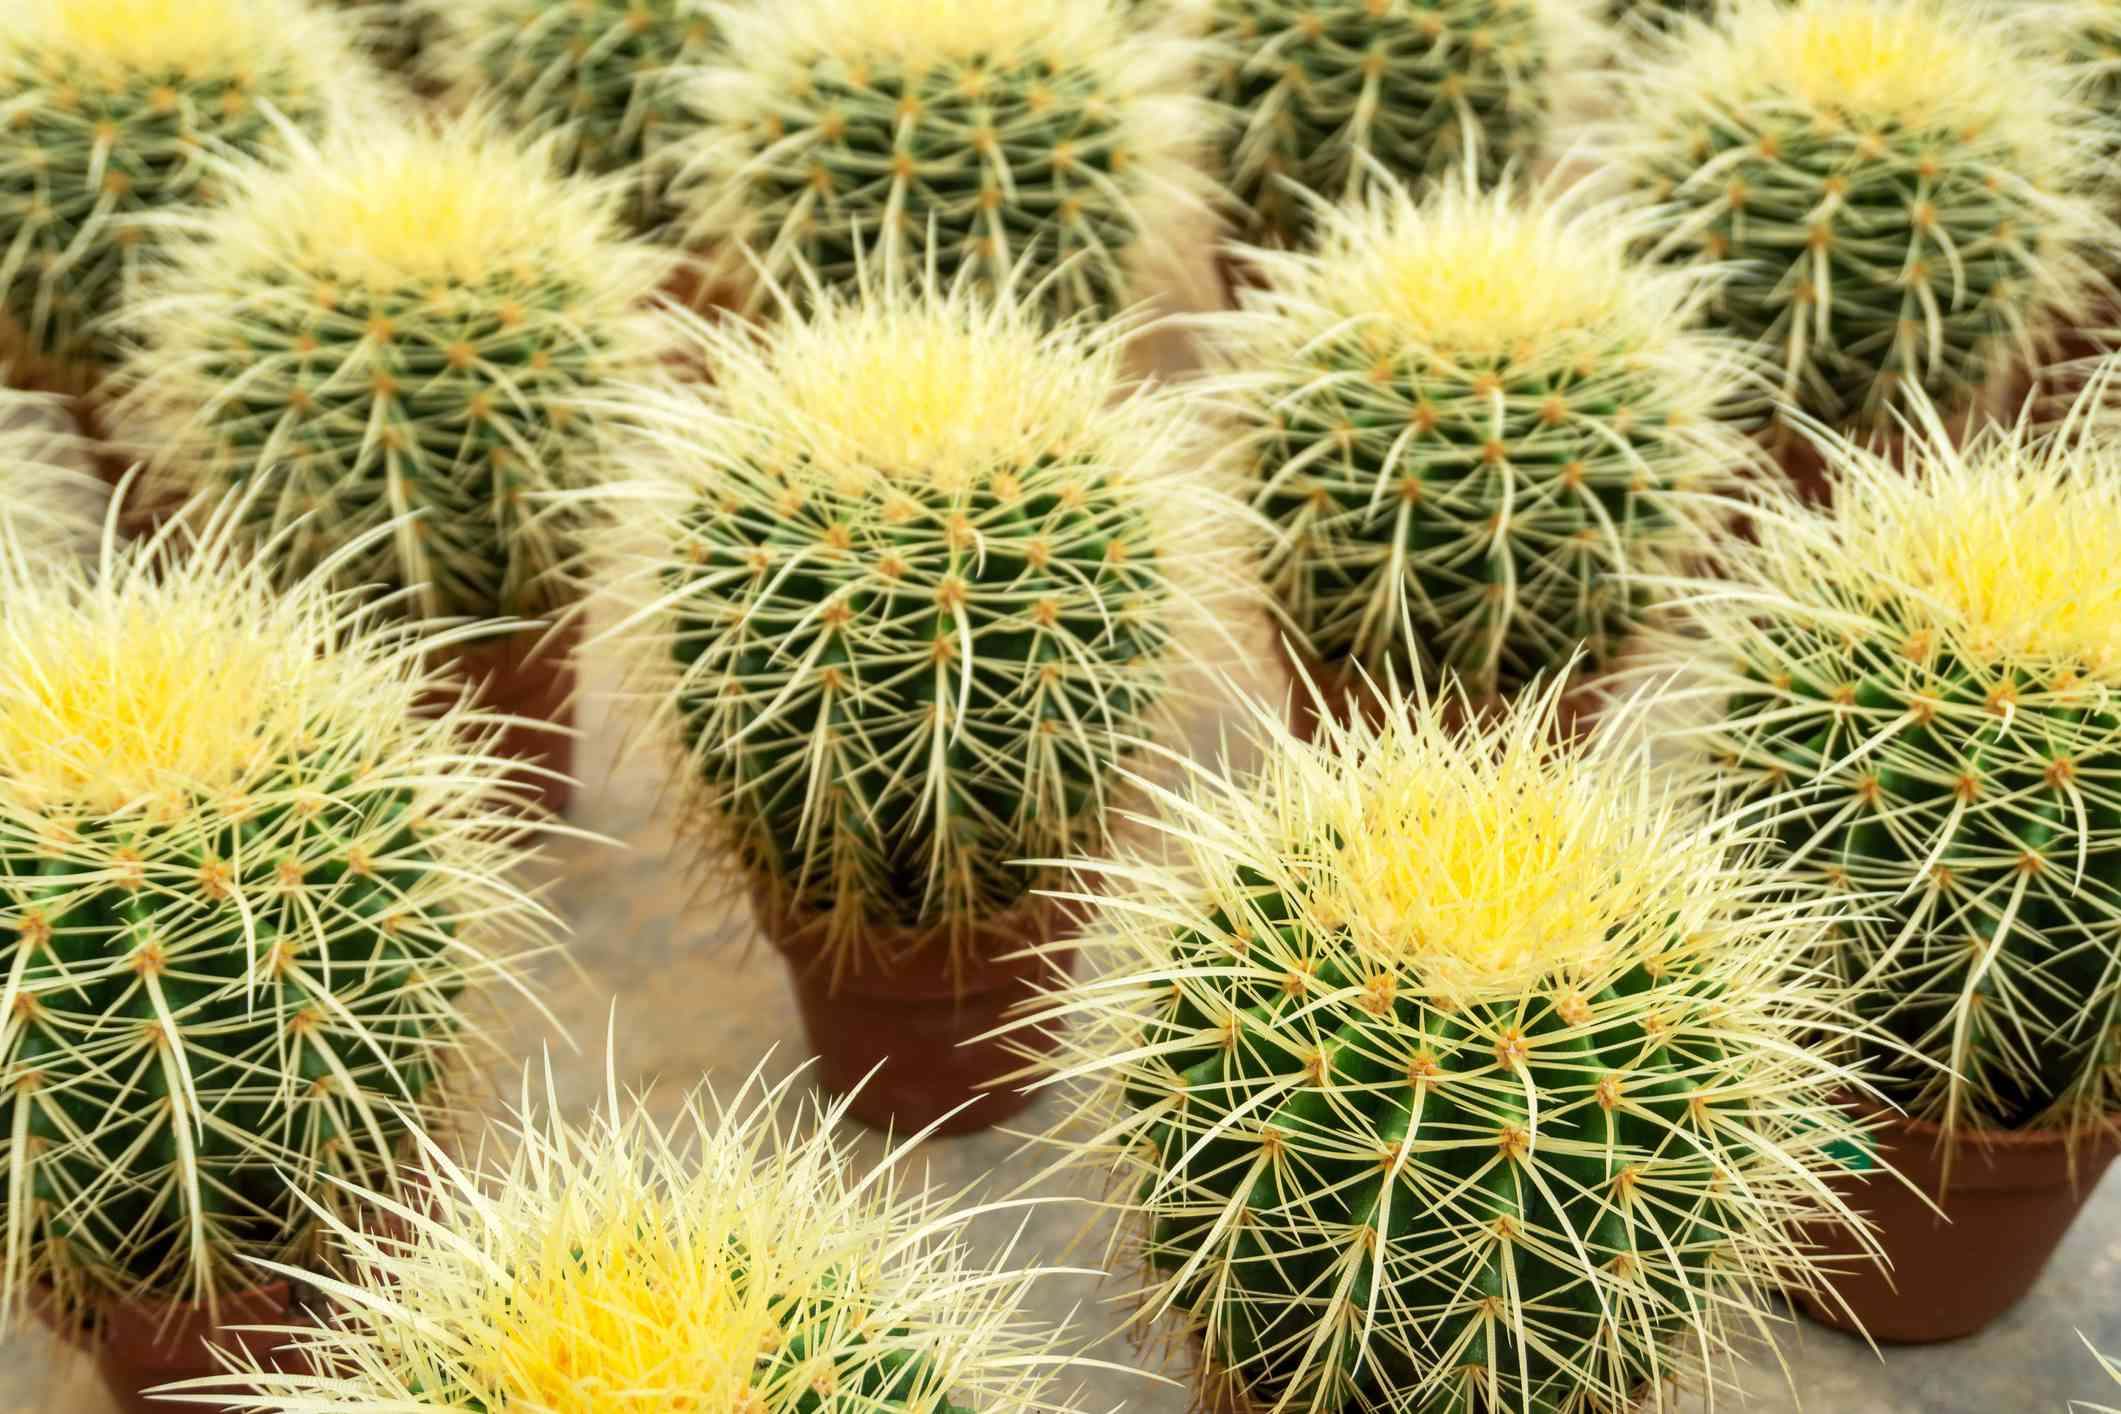 many small golden barrel cactus plants in pots with yellow spines and green flesh